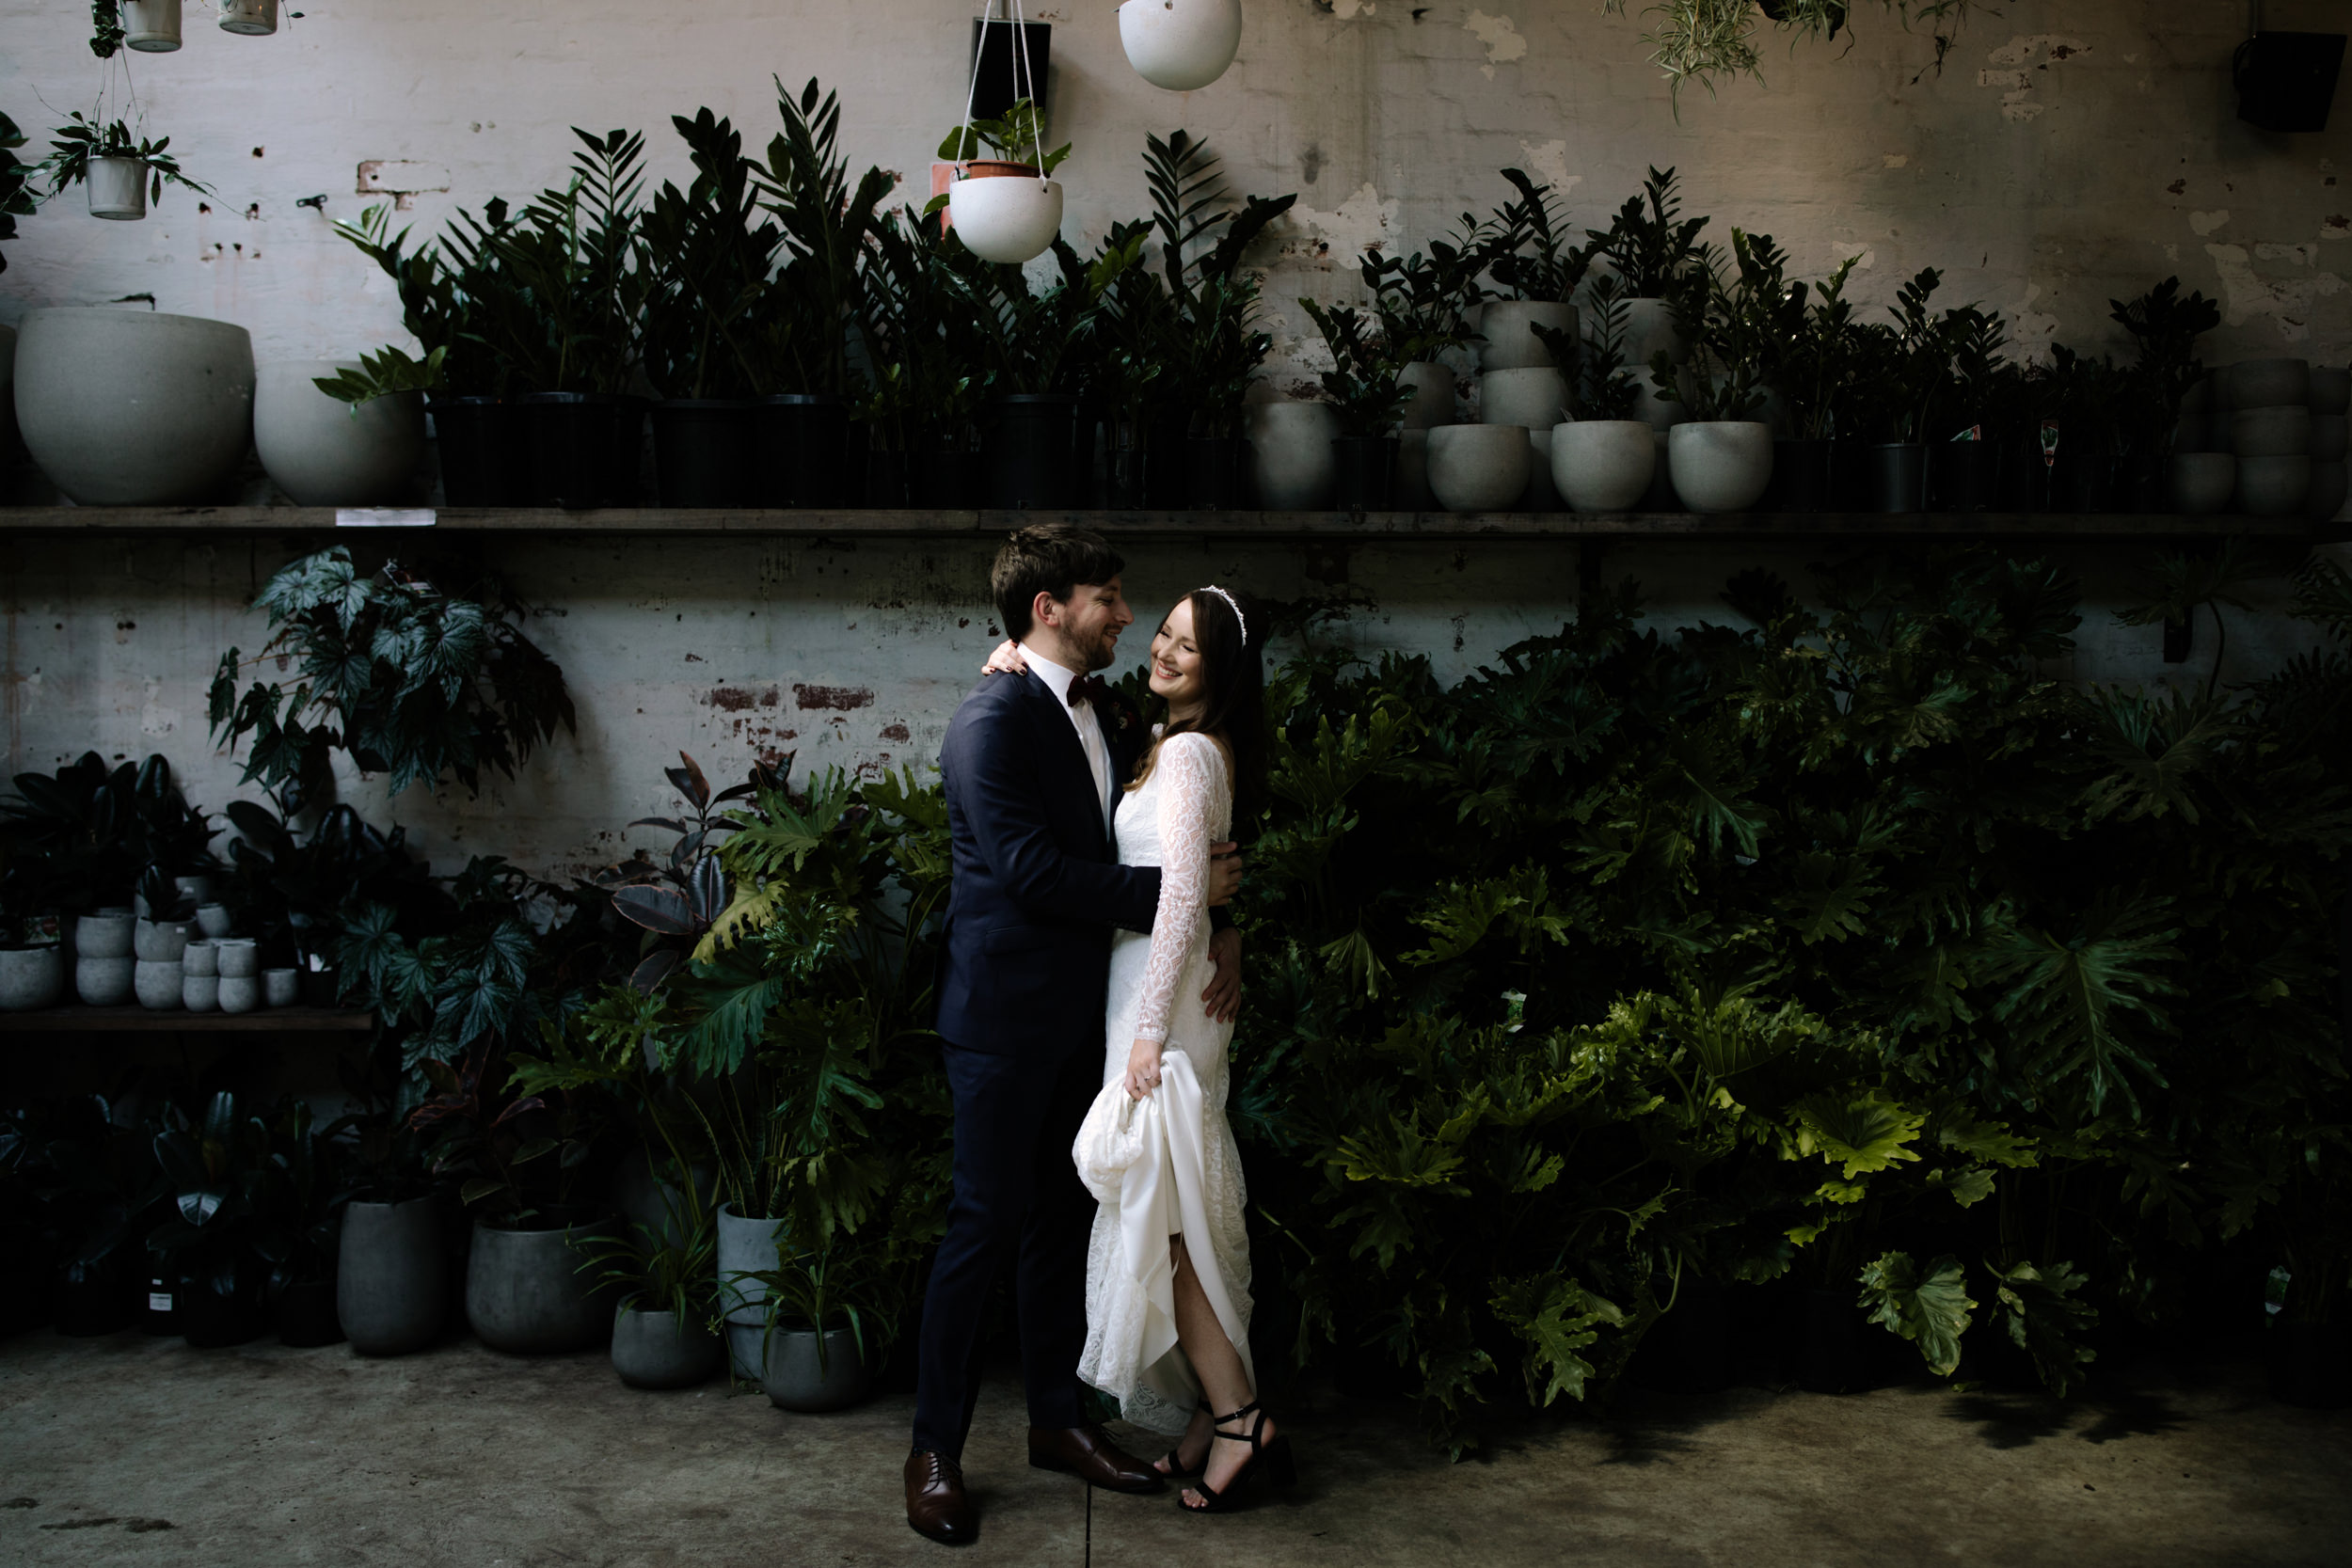 I_Got_You_Babe_Weddings_Emily_Matt_Rupert_Glasshaus_Melbourne0050.JPG